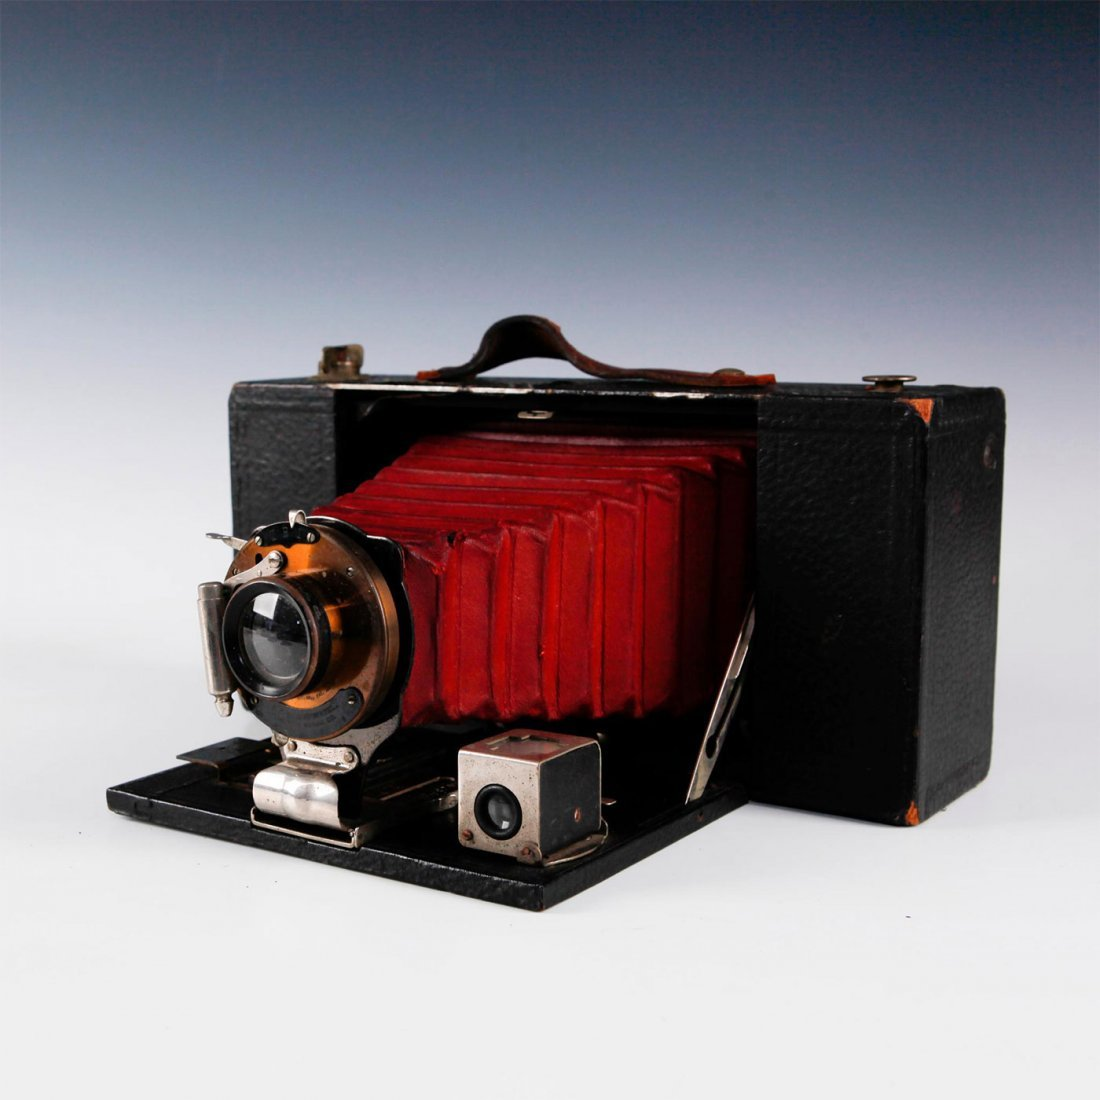 ANTIQUE KODAK TBI FPK AUTOMATIC FOLDING BELLOWS CAMERA